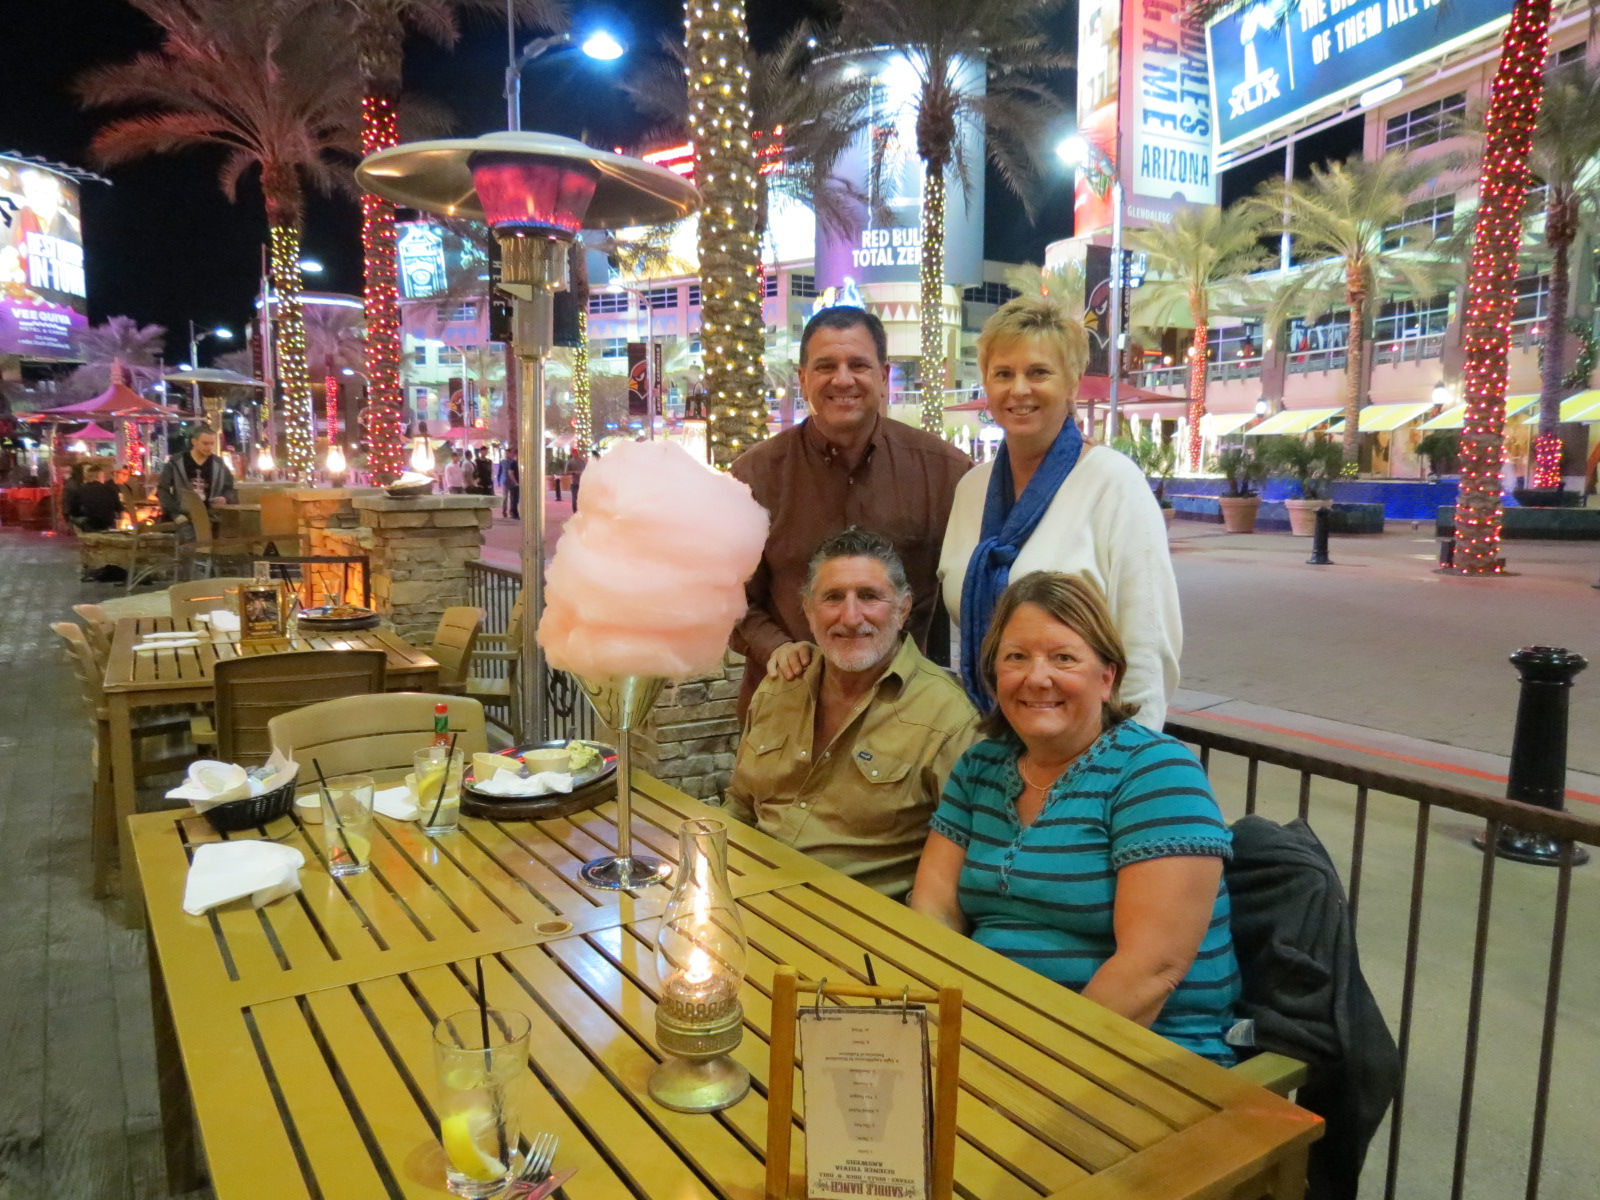 Vance, Donna, Lee & Carol at Saddle Ranch having a cotton candy tower after dinner.